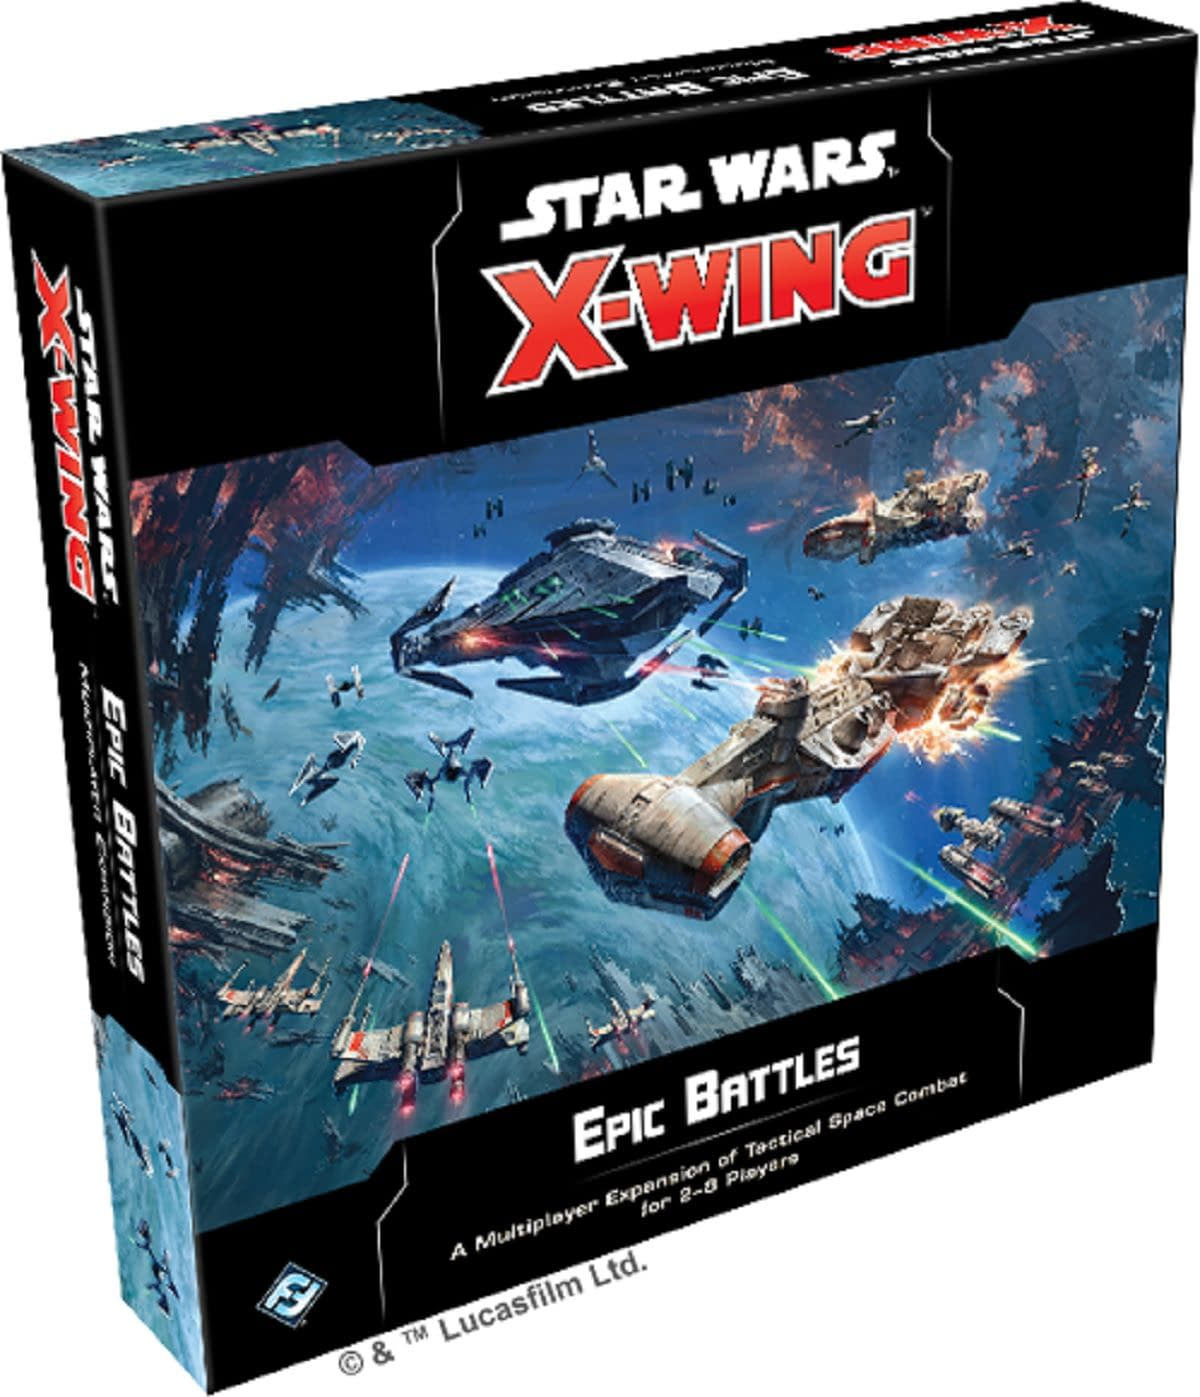 """""""Star Wars: X-Wing"""" Gets """"Epic Battles"""" Expansion from Fantasy Flight Games"""